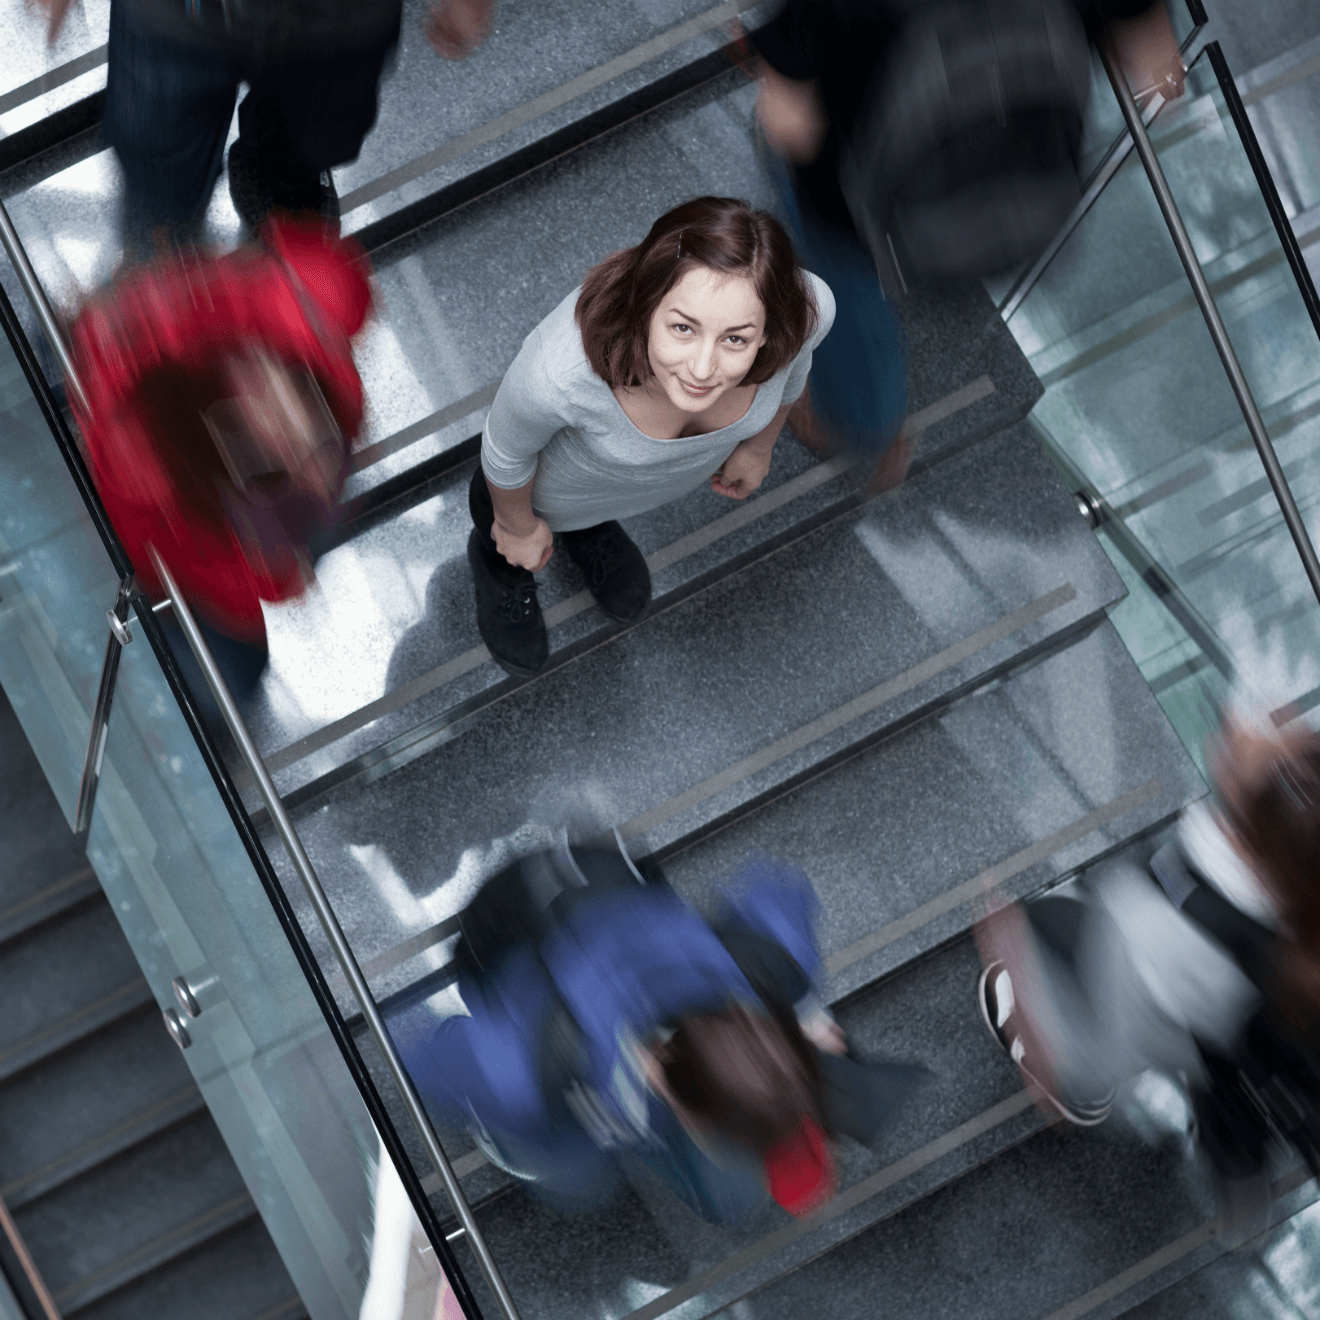 woman standing on stairs in crowd looking up at camera